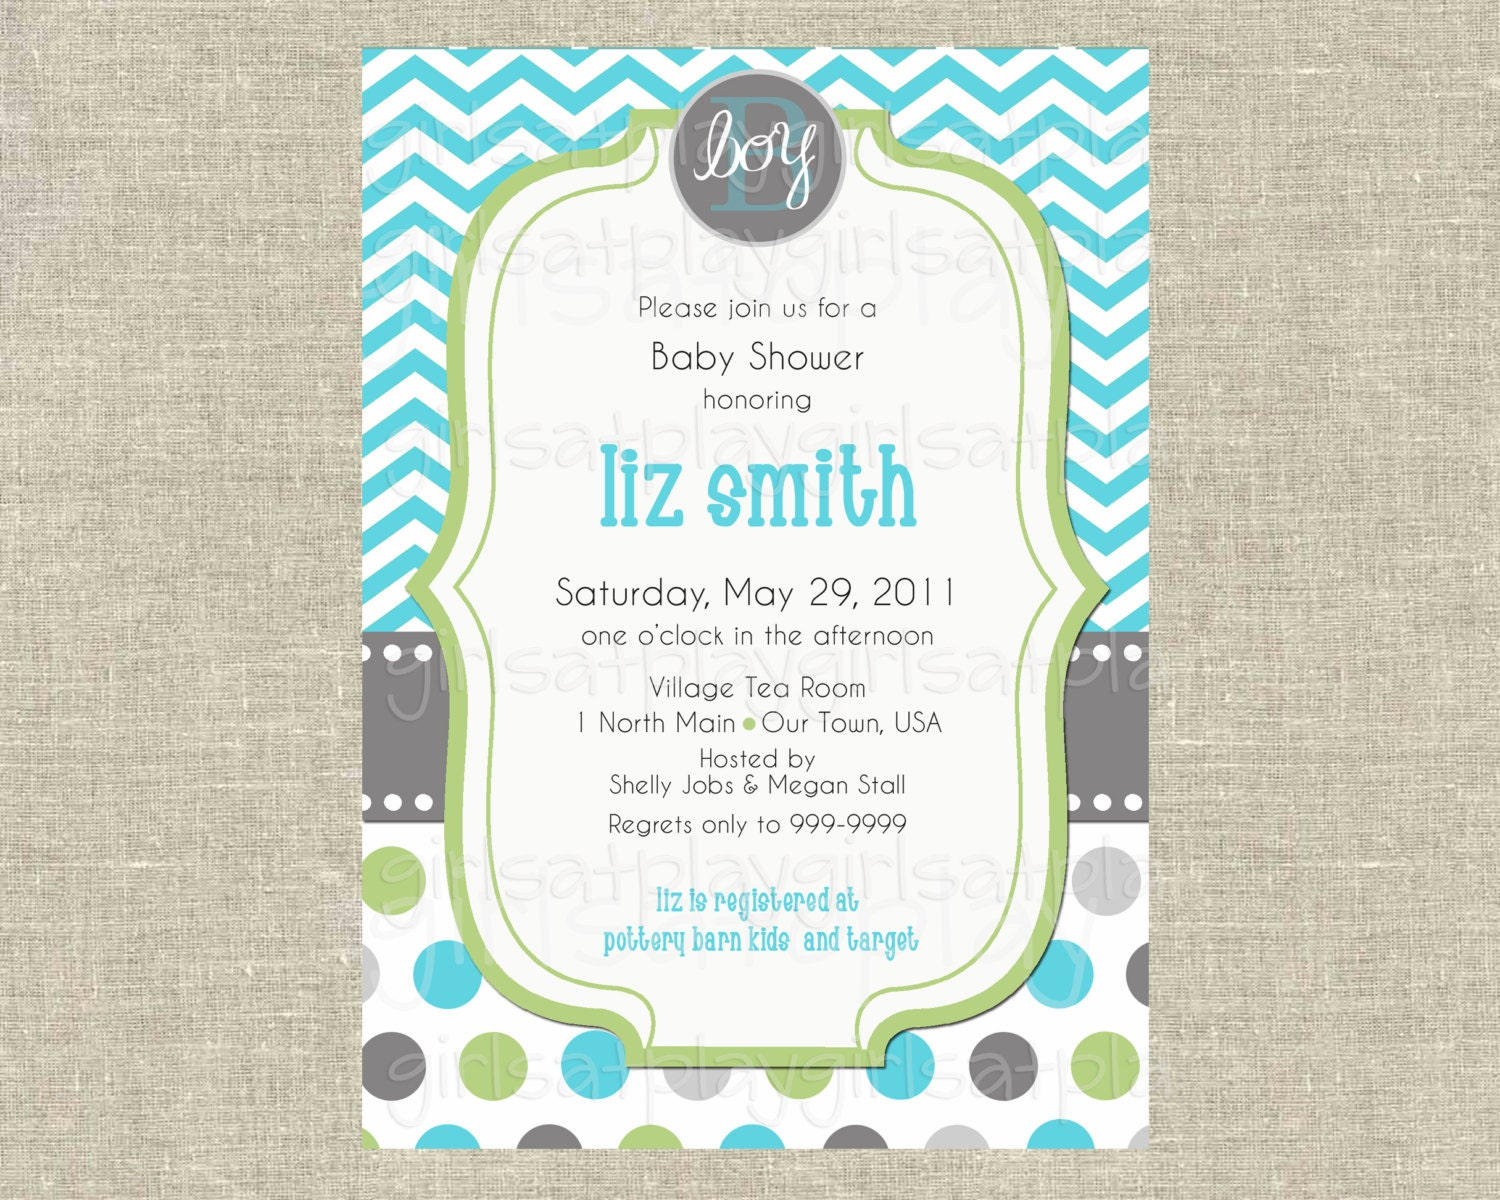 Baby Shower Invitation For Boy and get inspiration to create nice invitation ideas